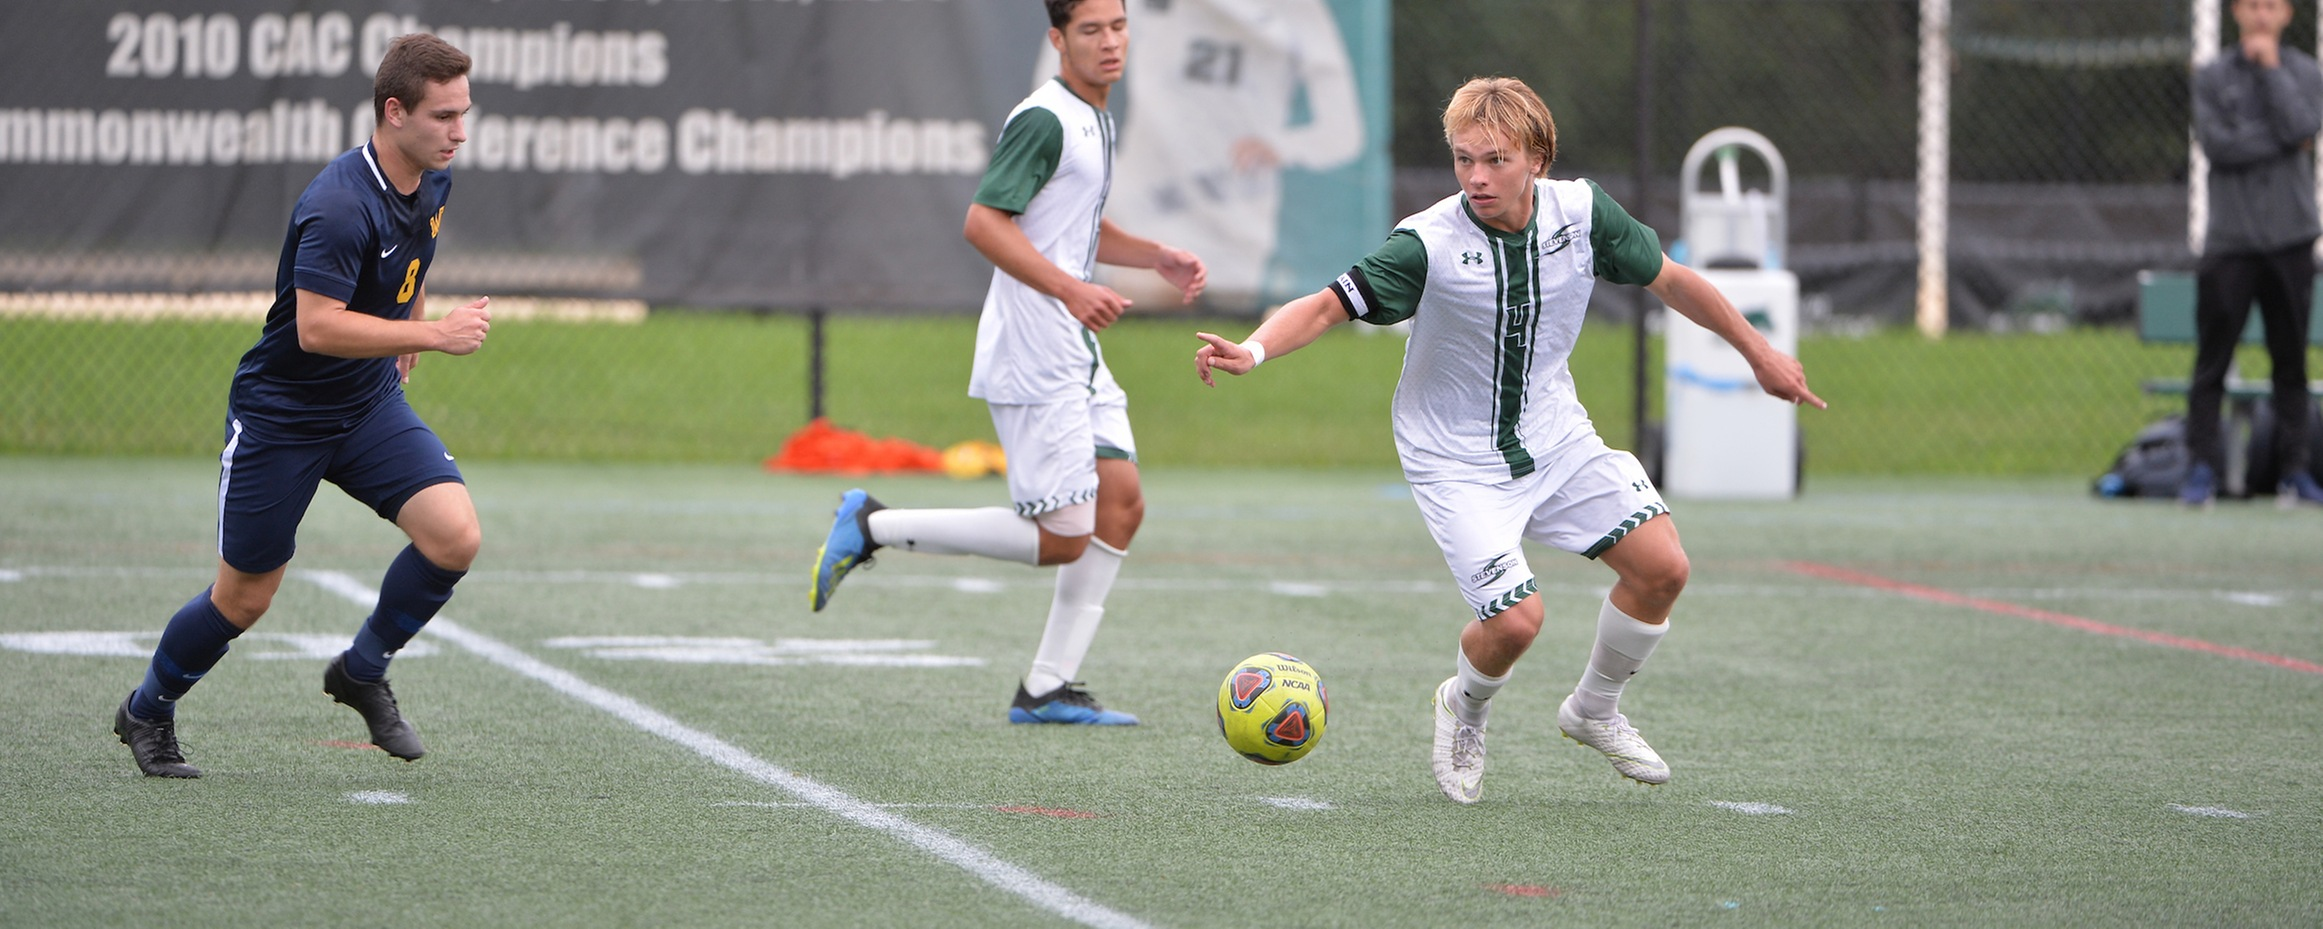 Mustangs Fall in Double Overtime at Haverford, 1-0